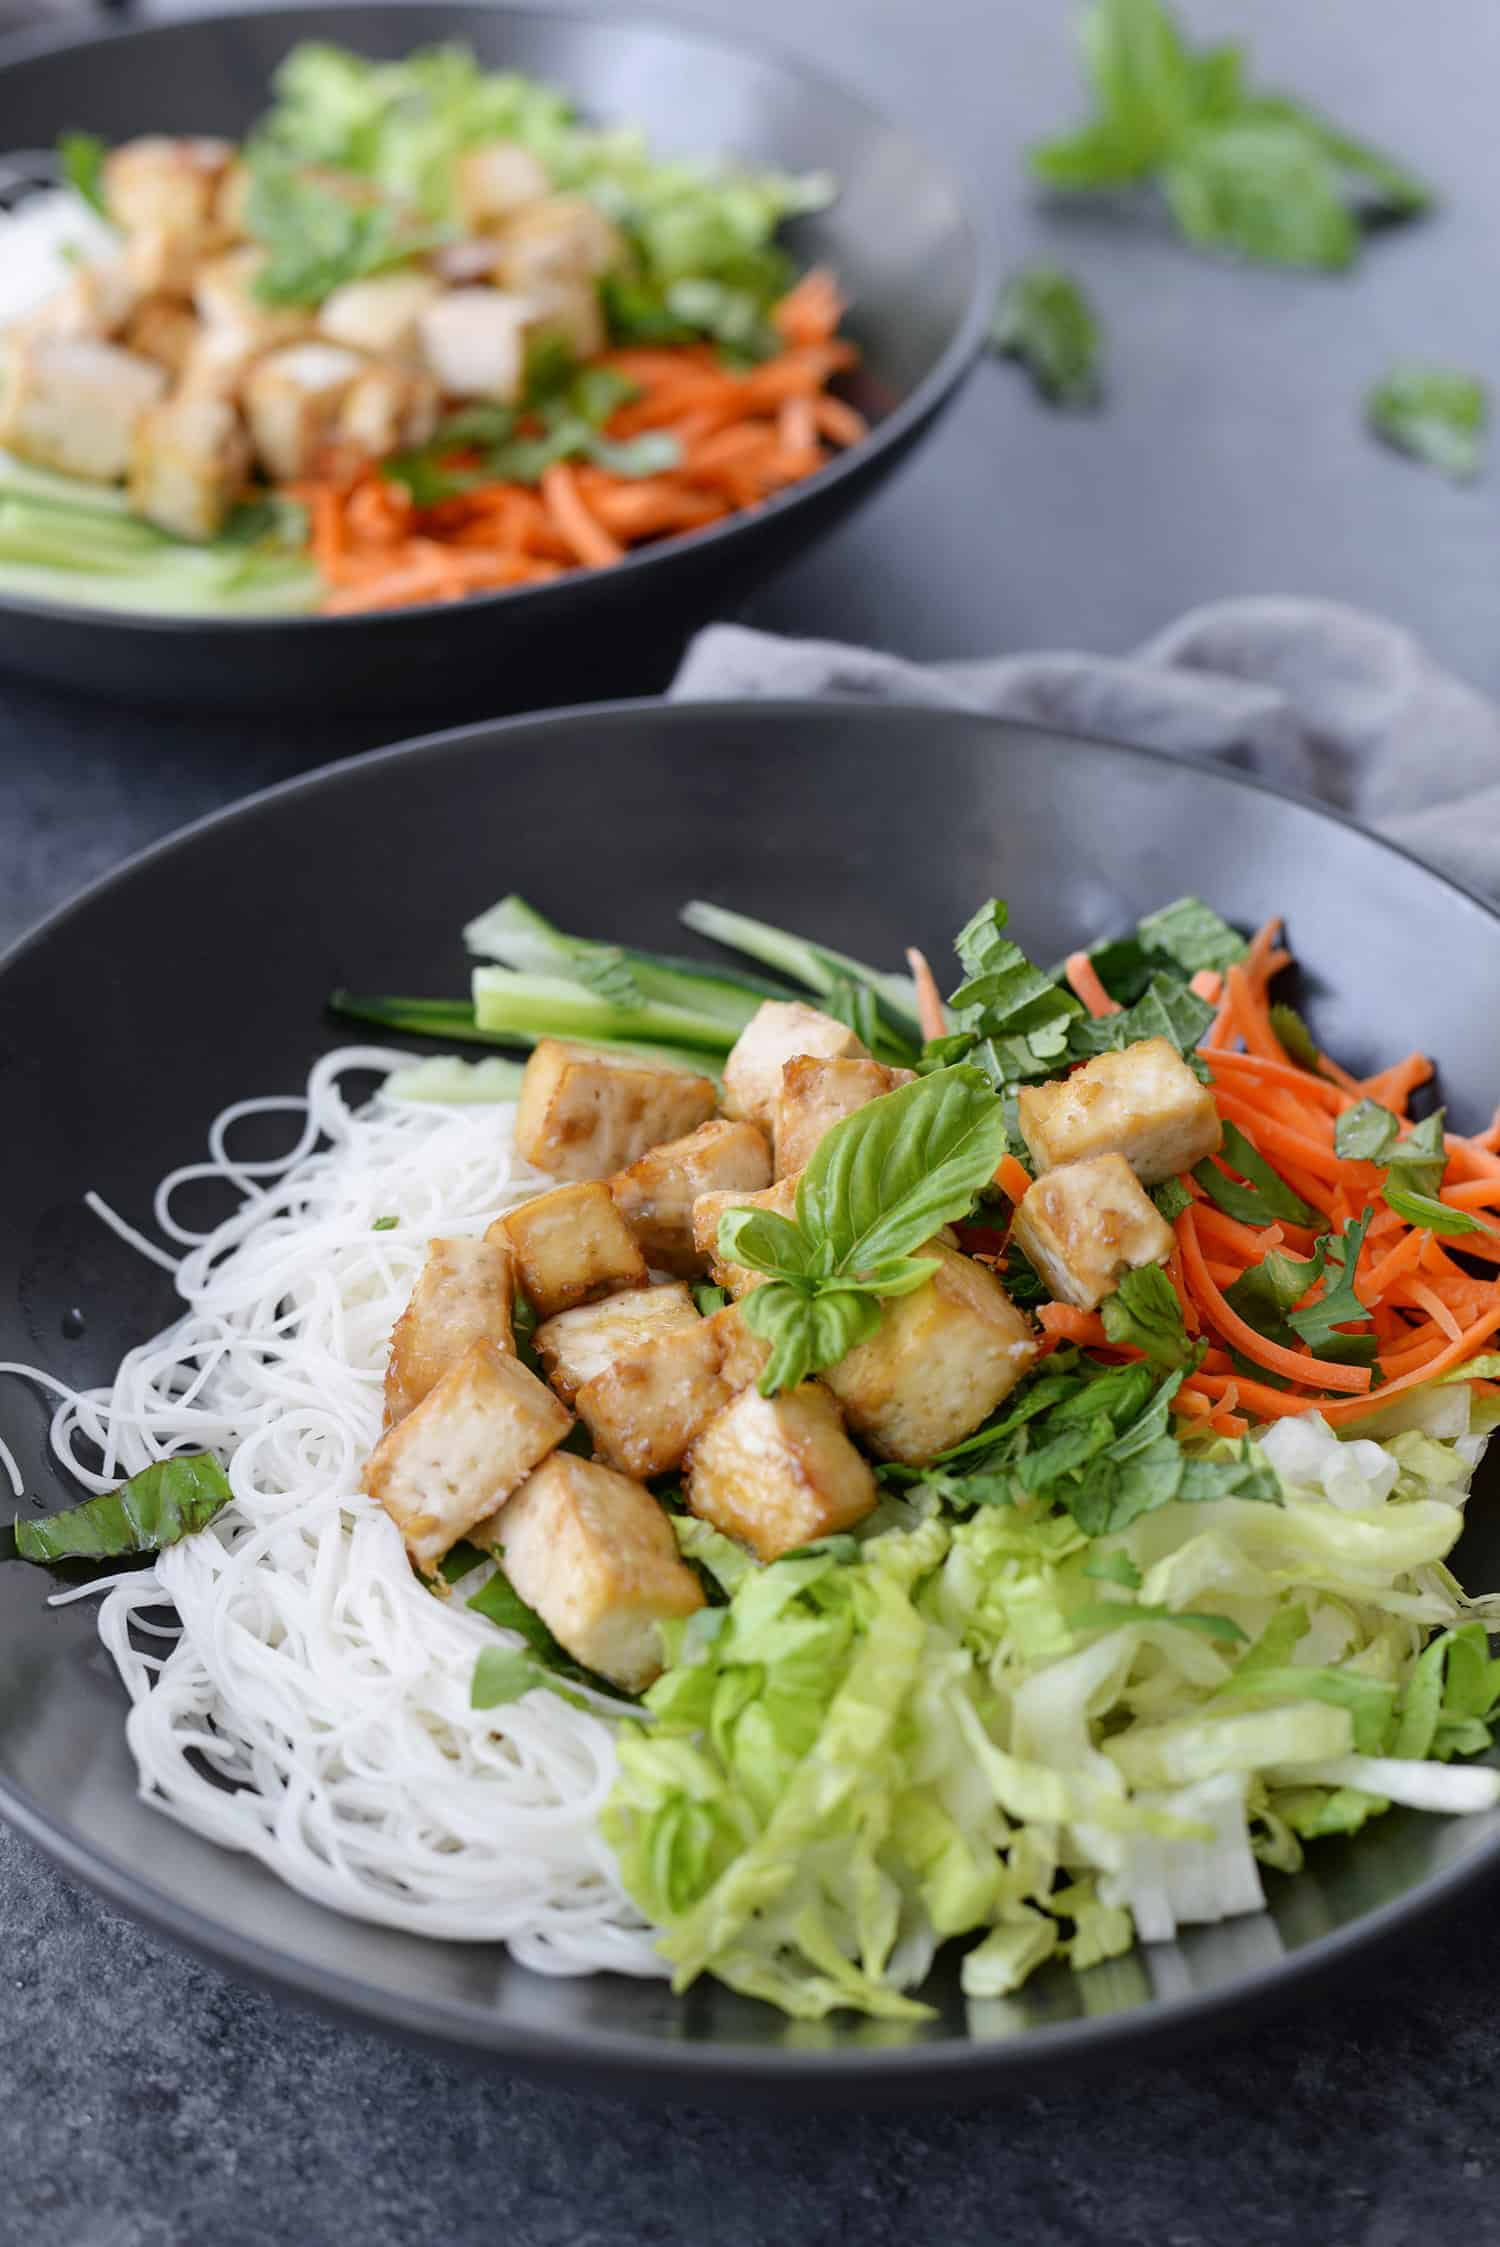 Vietnamese Spring Roll Salad! Just like spring rolls with a fraction of the work. If you love vermicelli bowls at Vietnamese restaurants, you've gotta try this gluten-free and vegan version. | www.delishknowledge.com